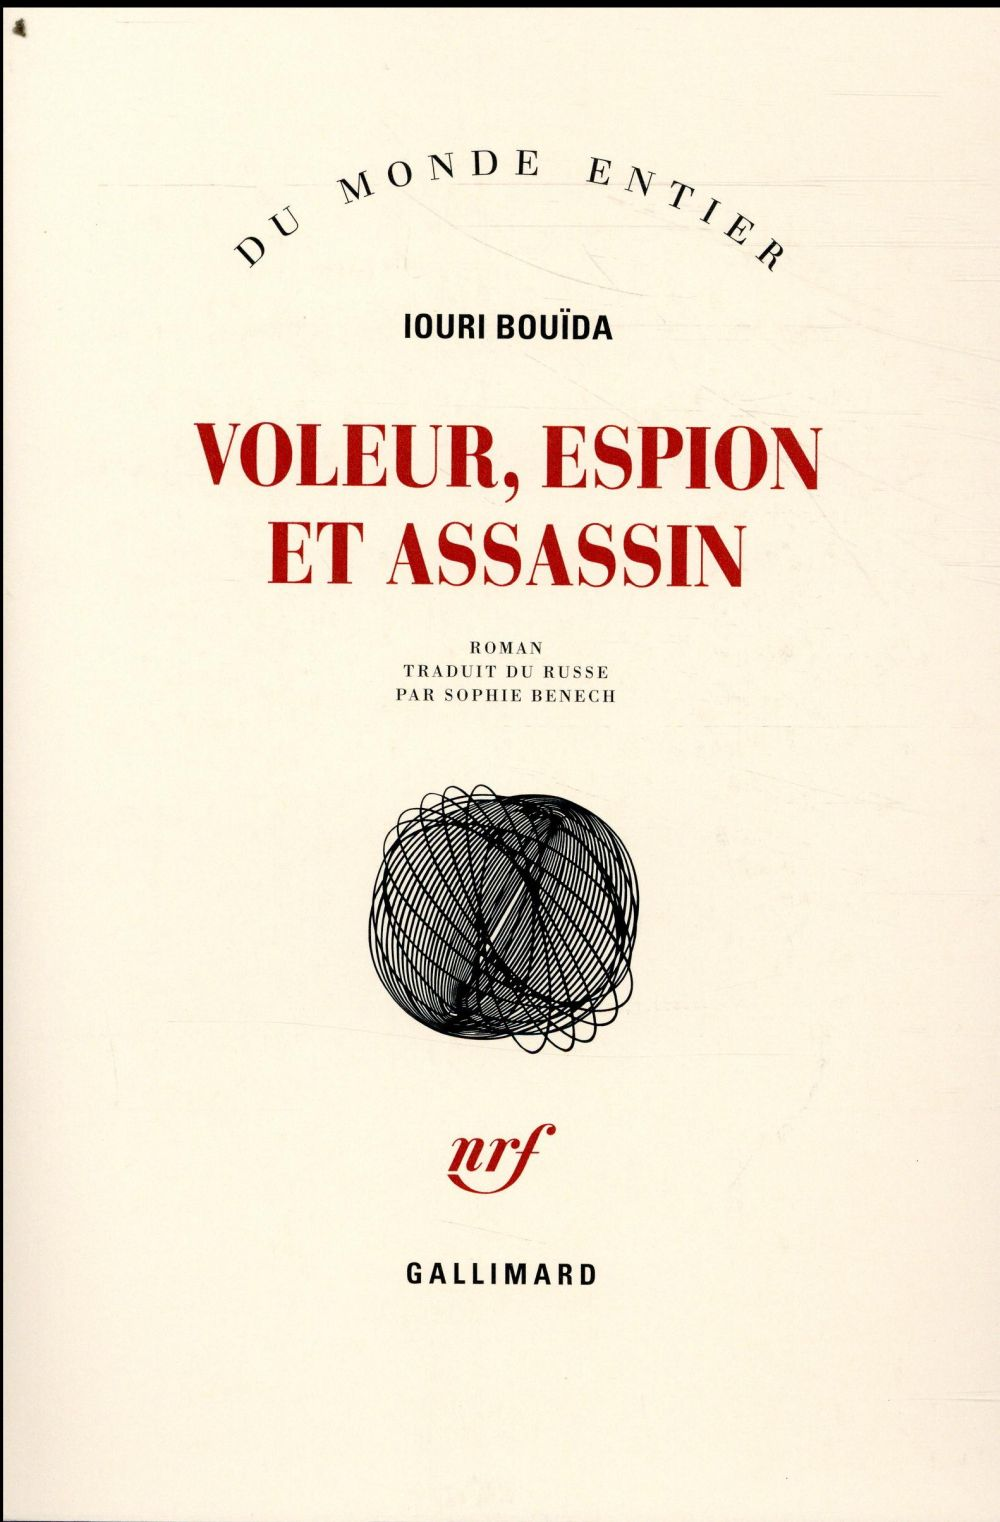 Voleur, espion, assassin